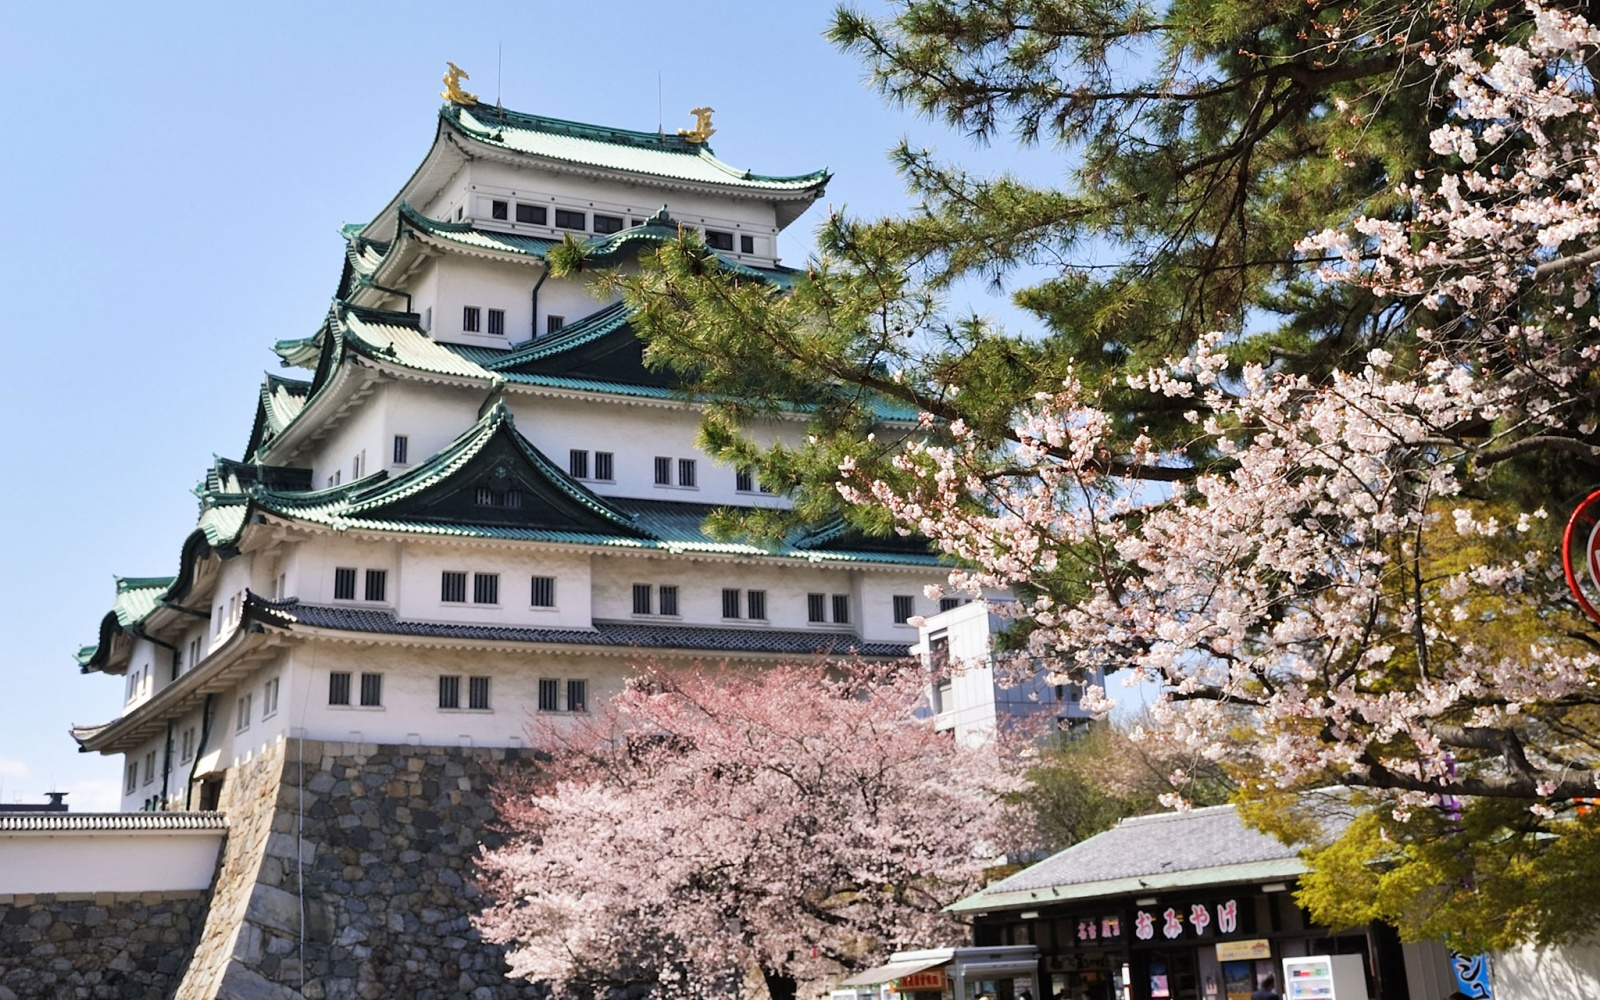 No. 15 Nagoya Castle, Japan